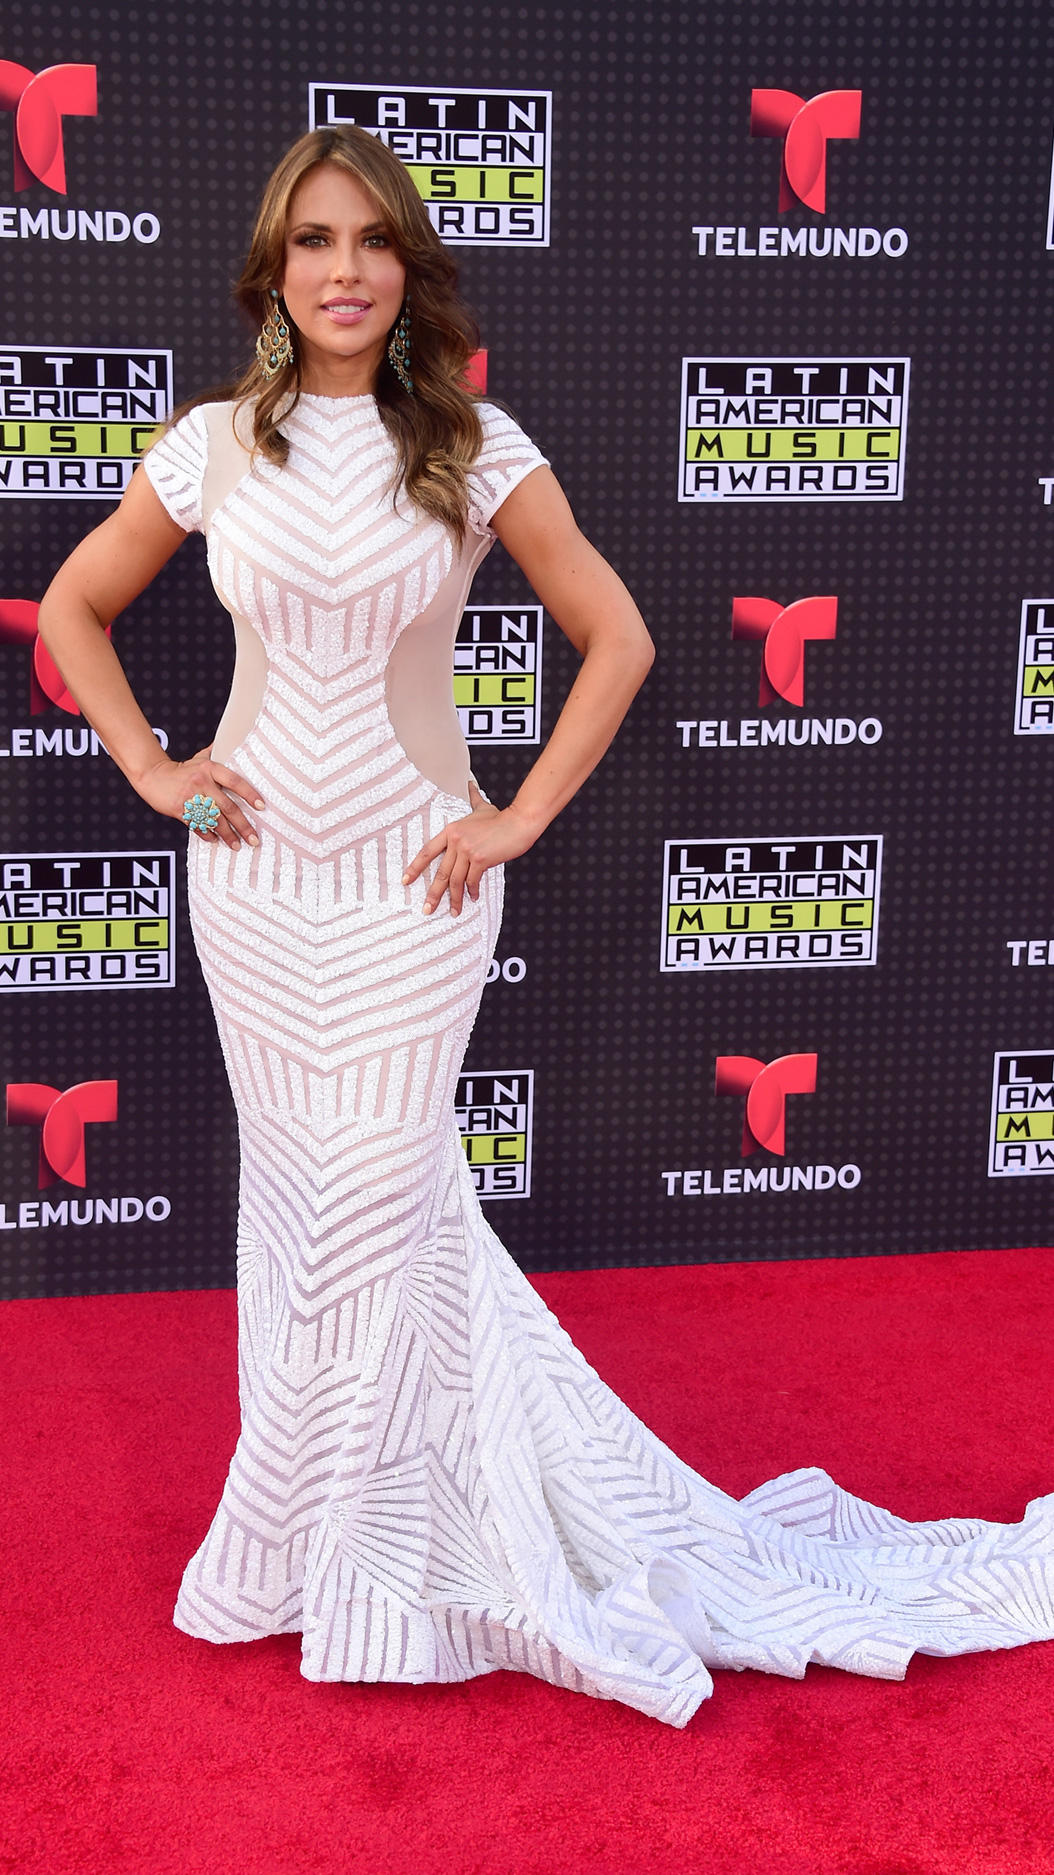 HOLLYWOOD, CA - OCTOBER 08:  Actress Vanessa Villela attends Telemundo's Latin American Music Awards at the Dolby Theatre on October 8, 2015 in Hollywood, California.  (Photo by Frazer Harrison/Getty Images)